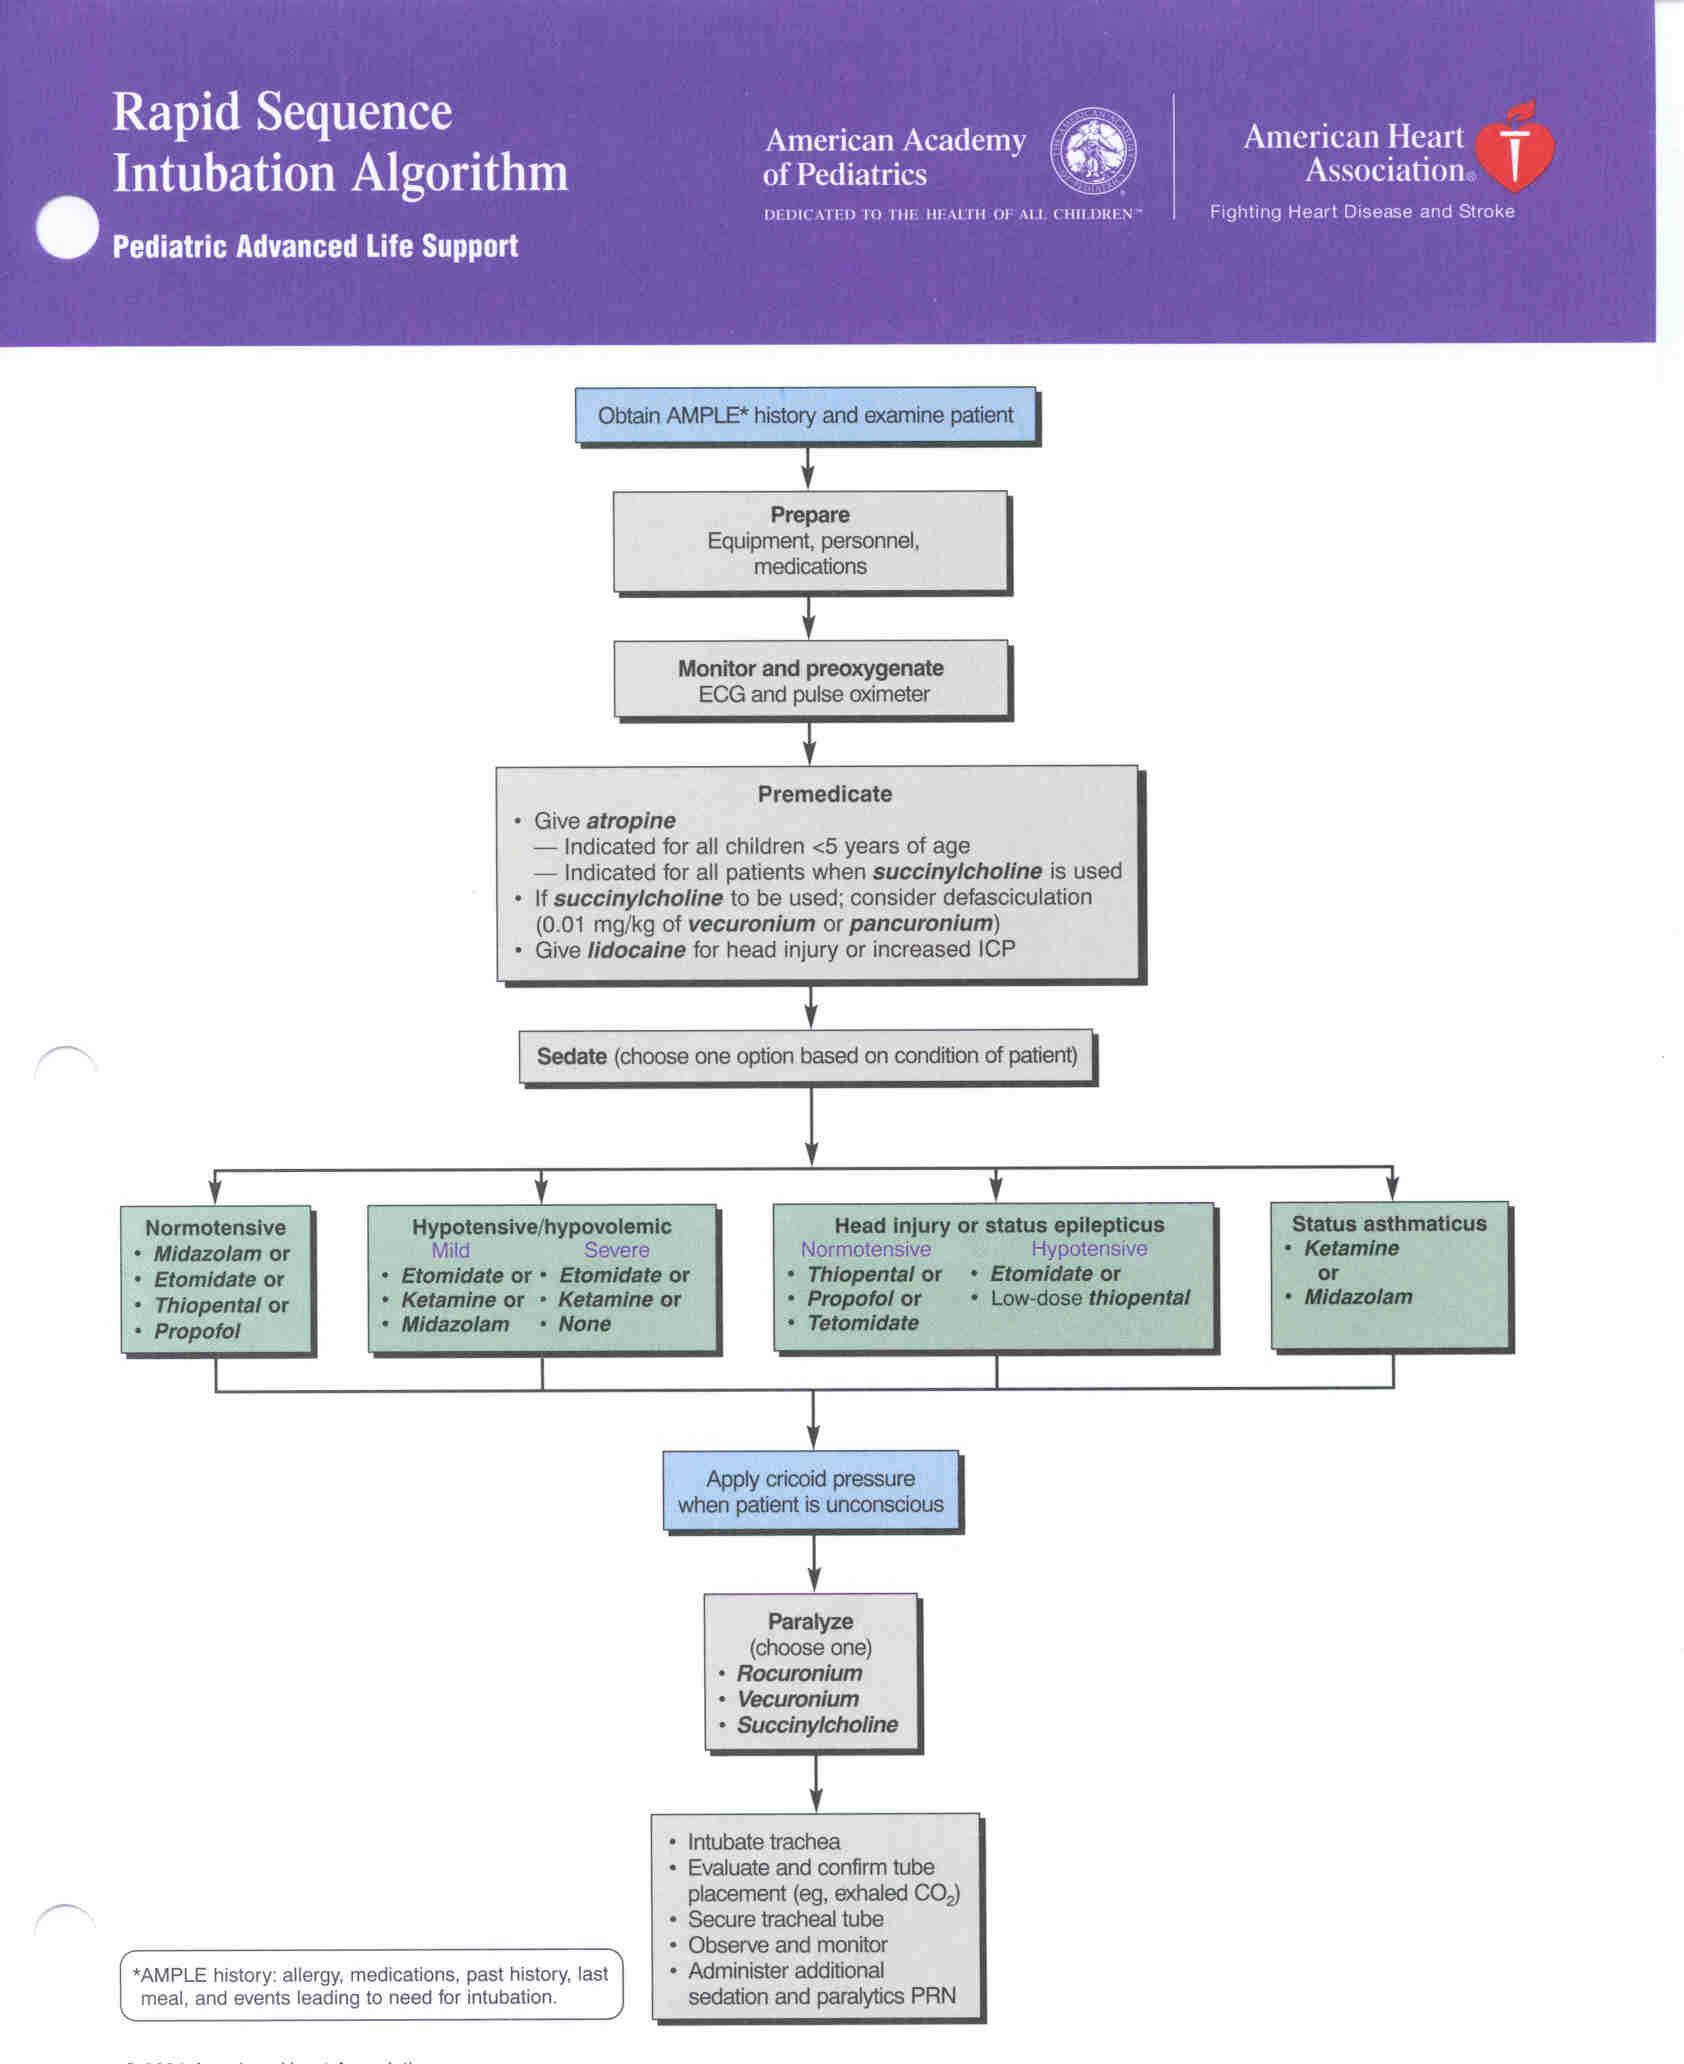 Rapid Sequence Intubation algorithm